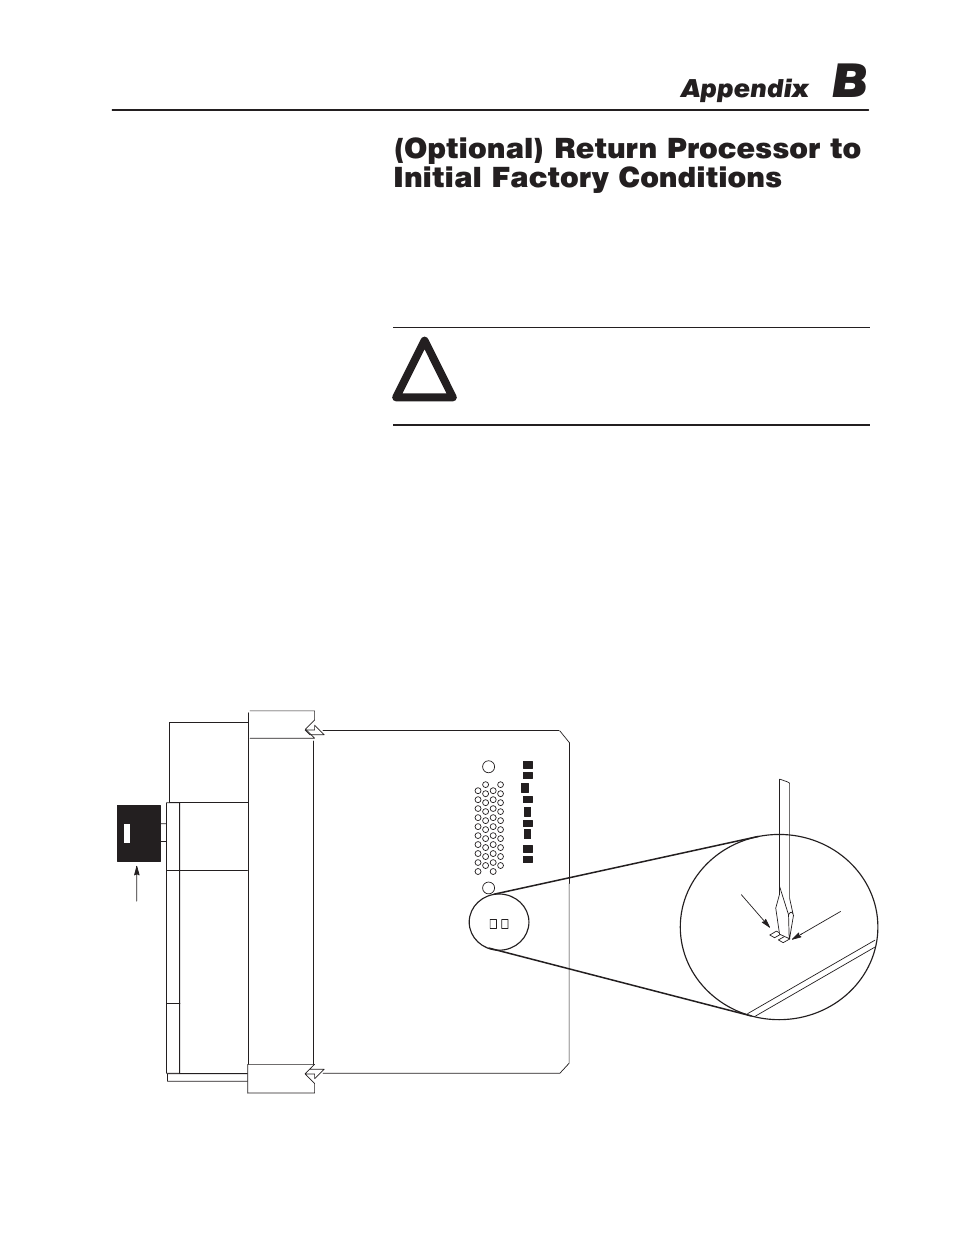 medium resolution of appendix rockwell automation 1747 l55x d174710 4 slc 500 ethernet user manual page 67 70